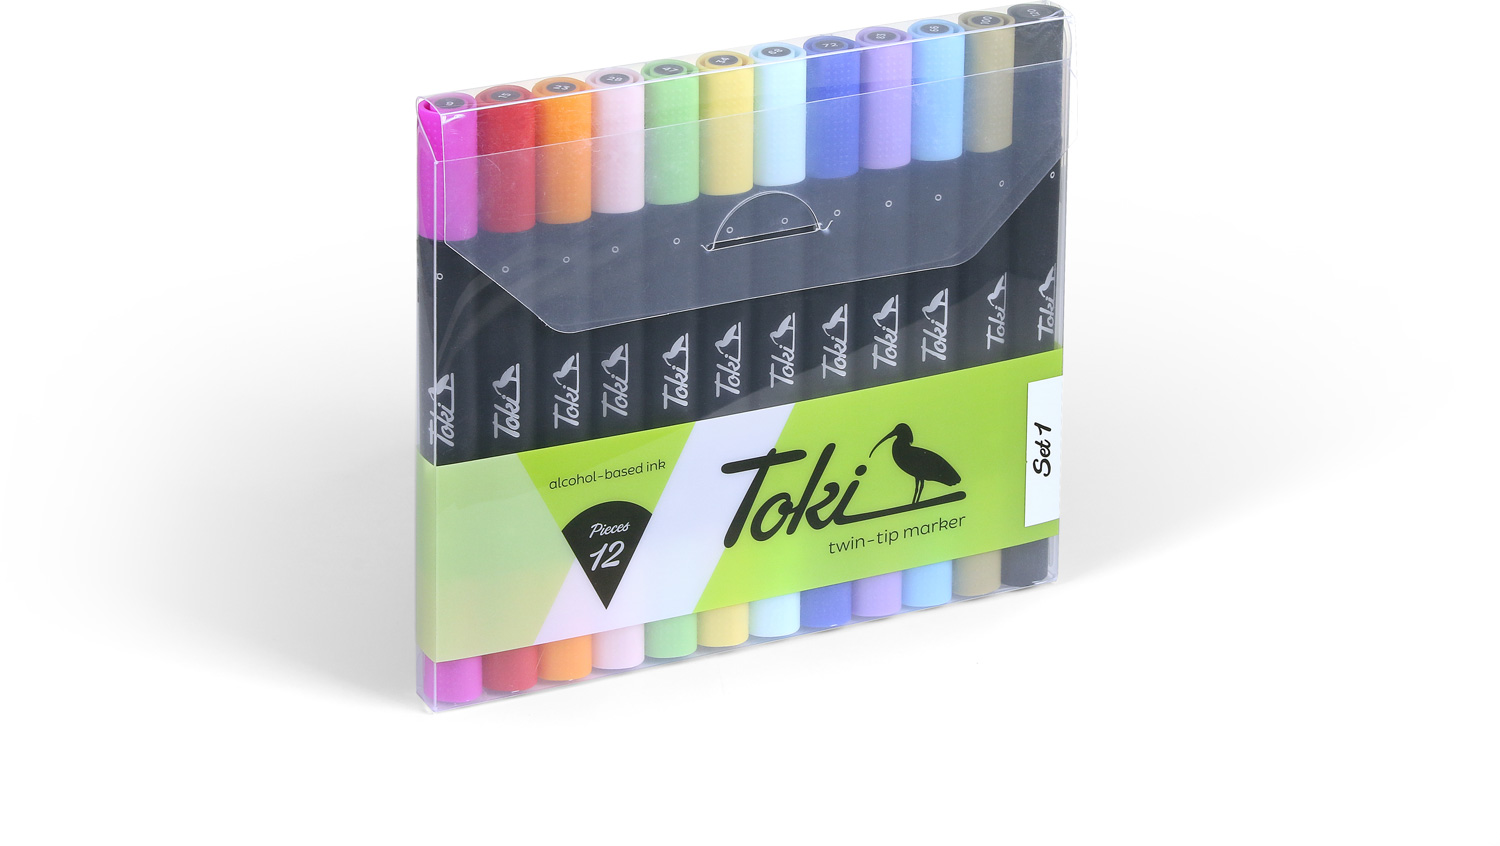 toki-layoutmarker-12er-set-1-130-zoom-0